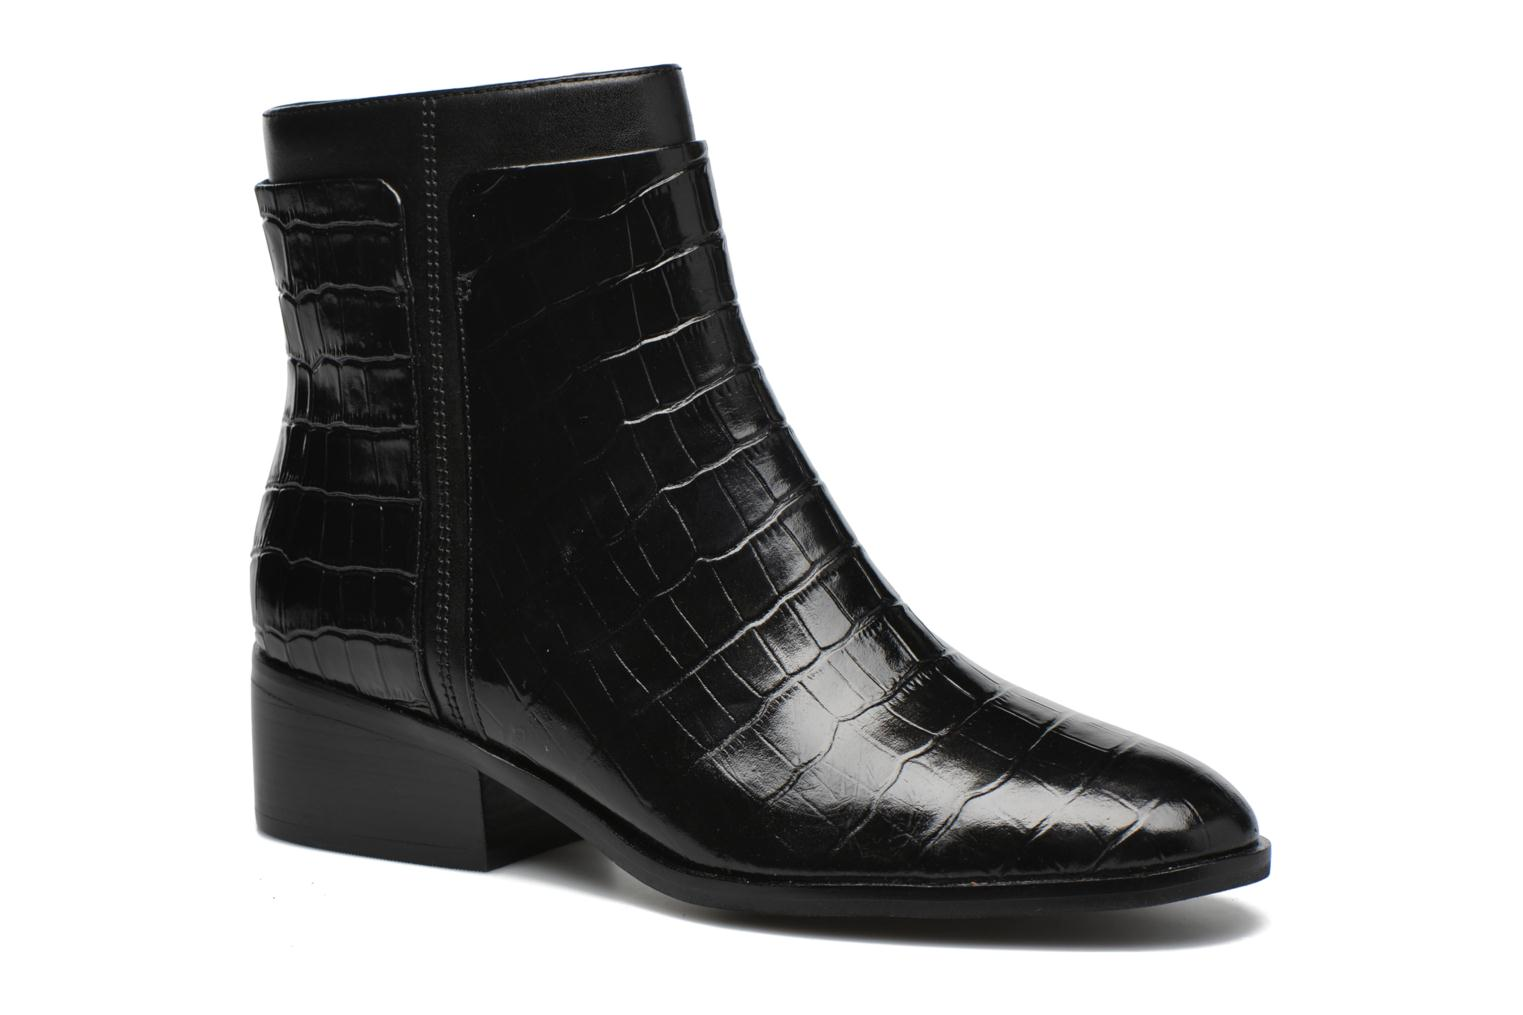 Marques Chaussure femme What For femme Panhu Black Croco